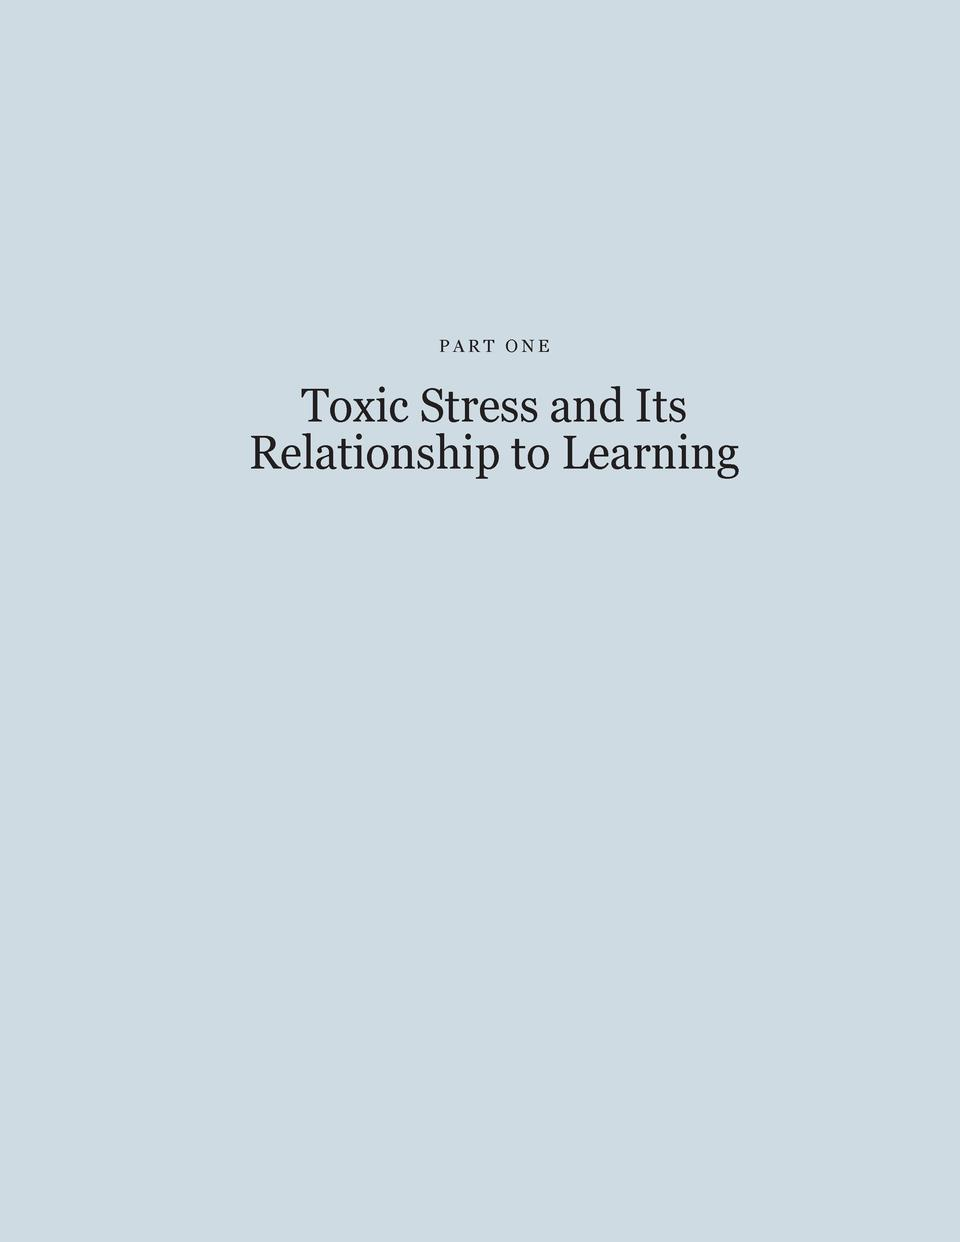 PART ONE  Toxic Stress and Its Relationship to Learning